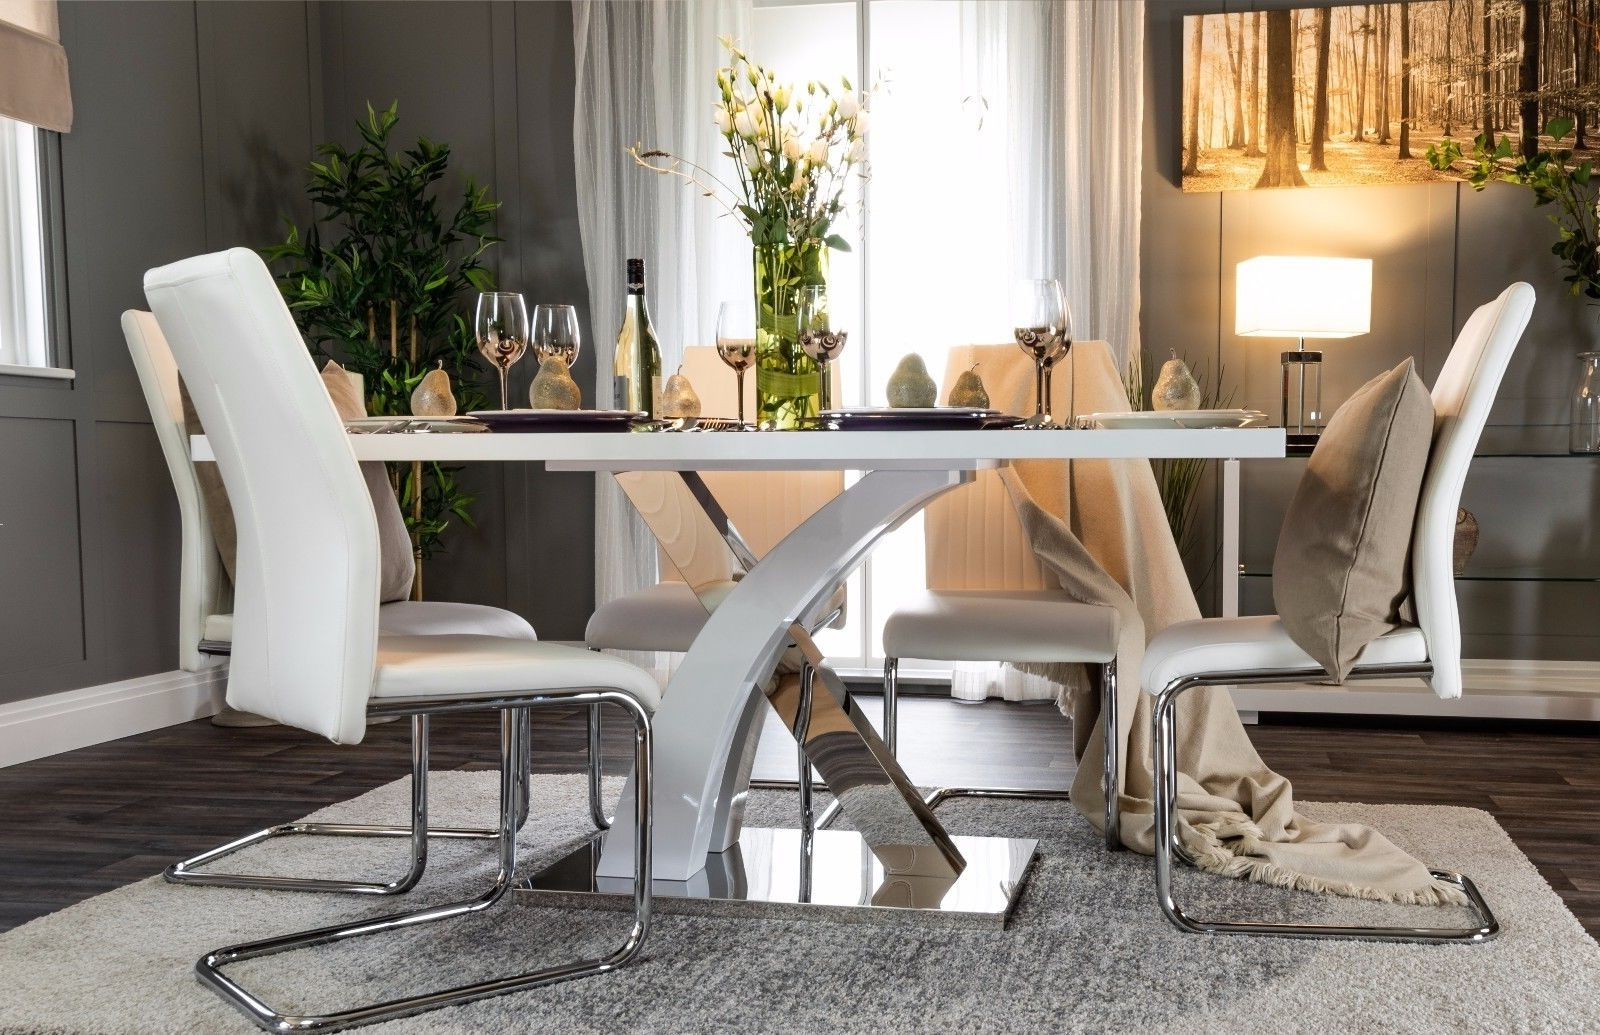 Well Liked Atlanta White Grey High Gloss Chrome Dining Table Set And 6 Leather For Glass And Chrome Dining Tables And Chairs (View 24 of 25)